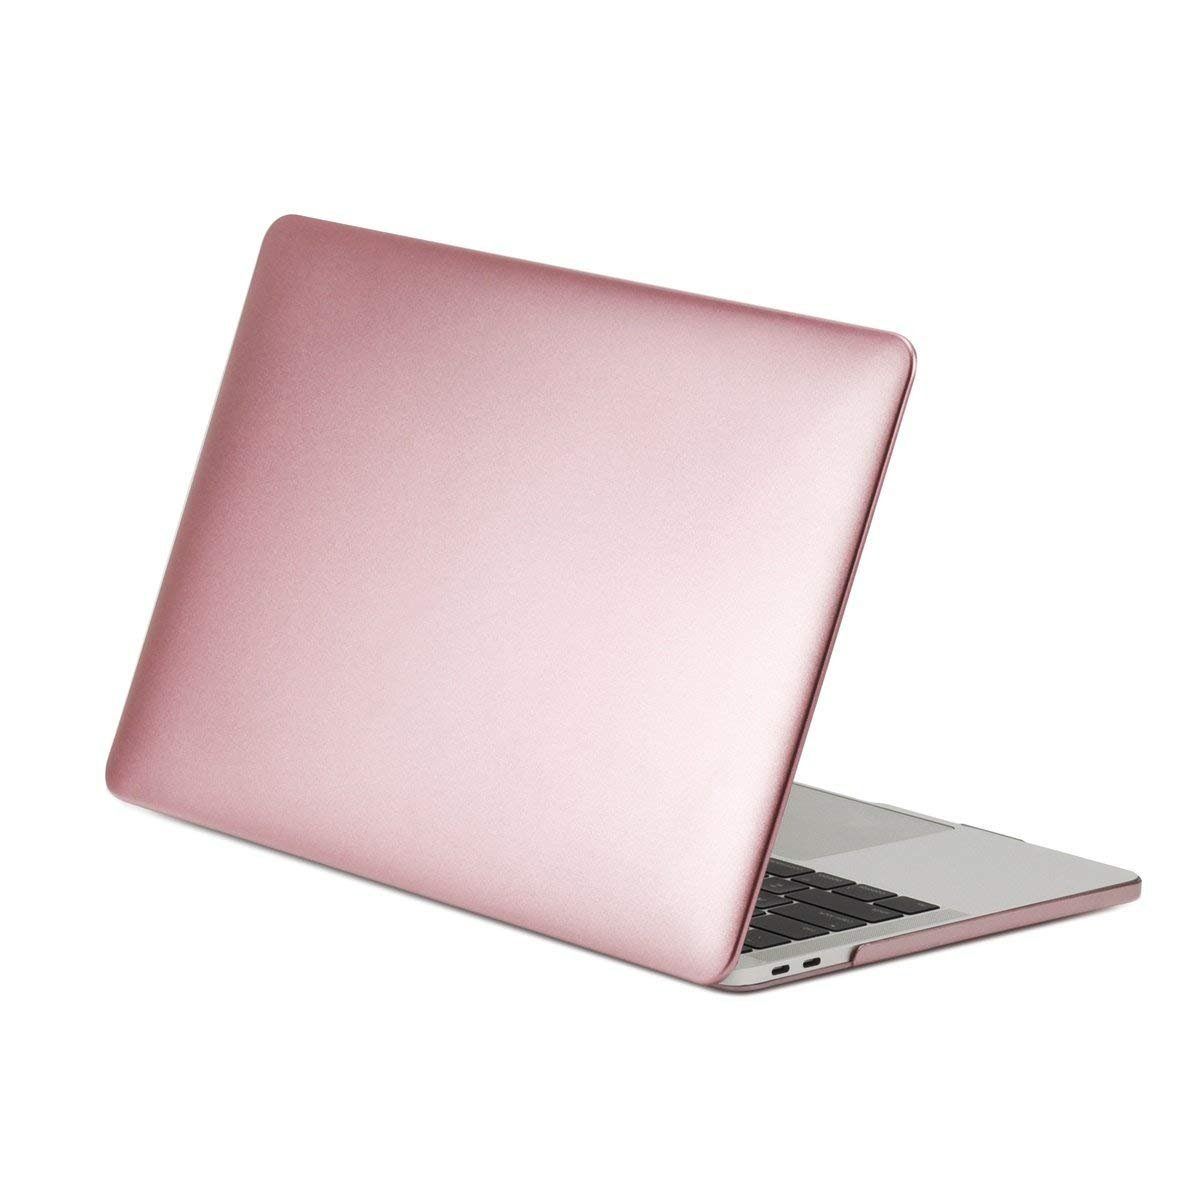 TOP CASE - 4 in 1 Matte Hard Case, Keyboard Cover, Sleeve, Screen Protector Compatible with MacBook Pro 13'' with/Without Touch Bar Model: A1989 / A1706 / A1708 (Release 2016-2019) - Rose Gold by TOP CASE (Image #3)